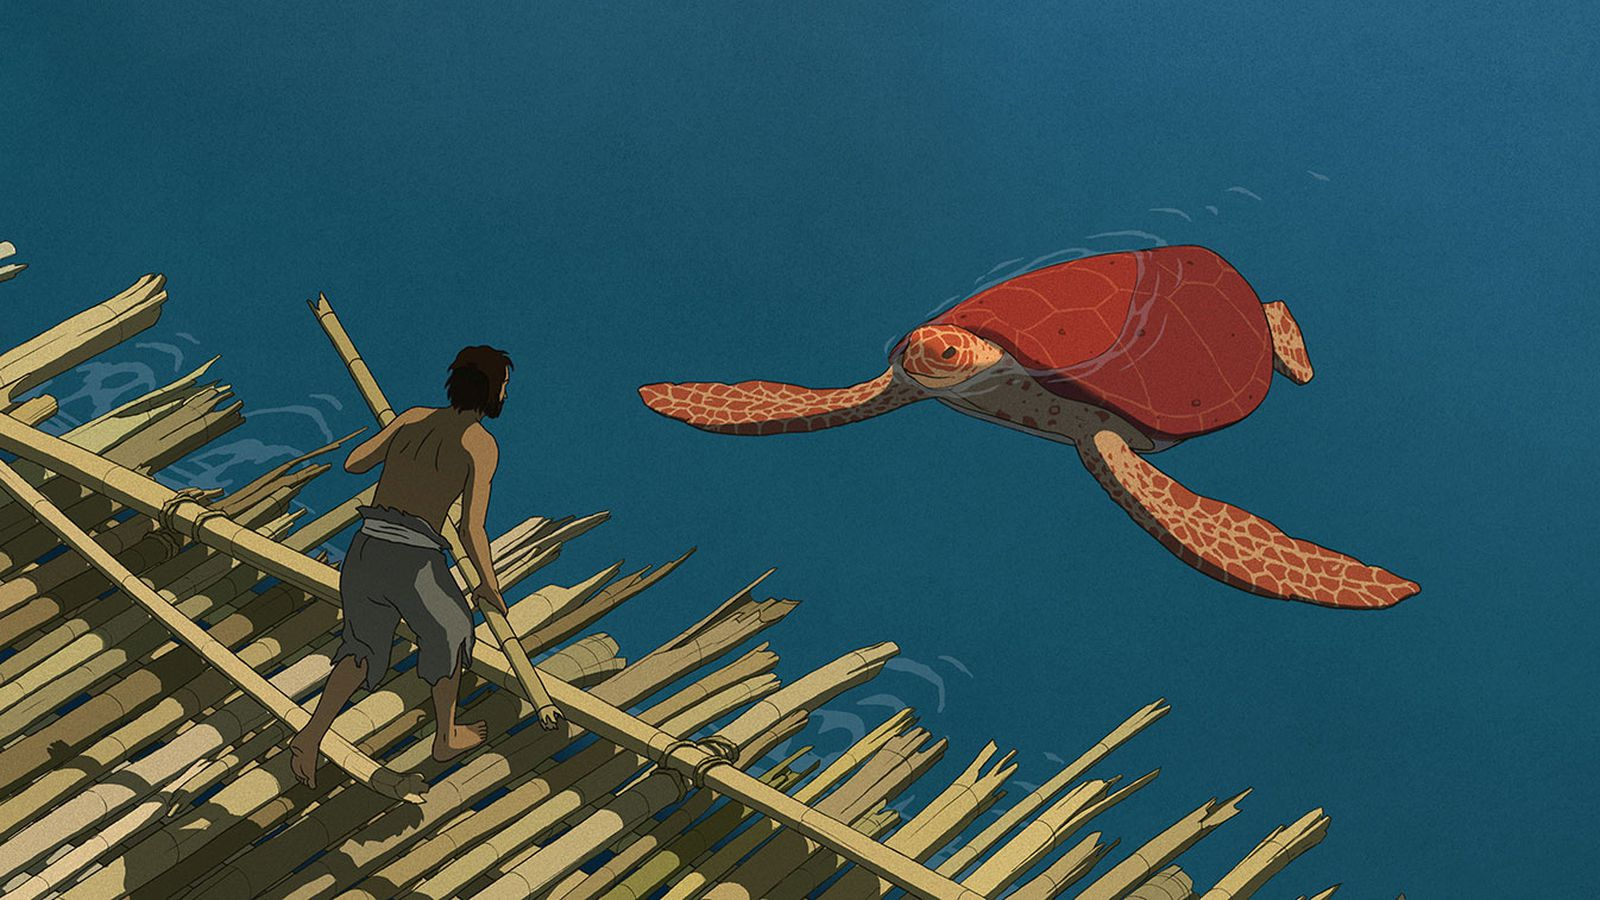 The Red Turtle Is A Breathtaking Example Of What Animation Is Capable Of Achieving Vox